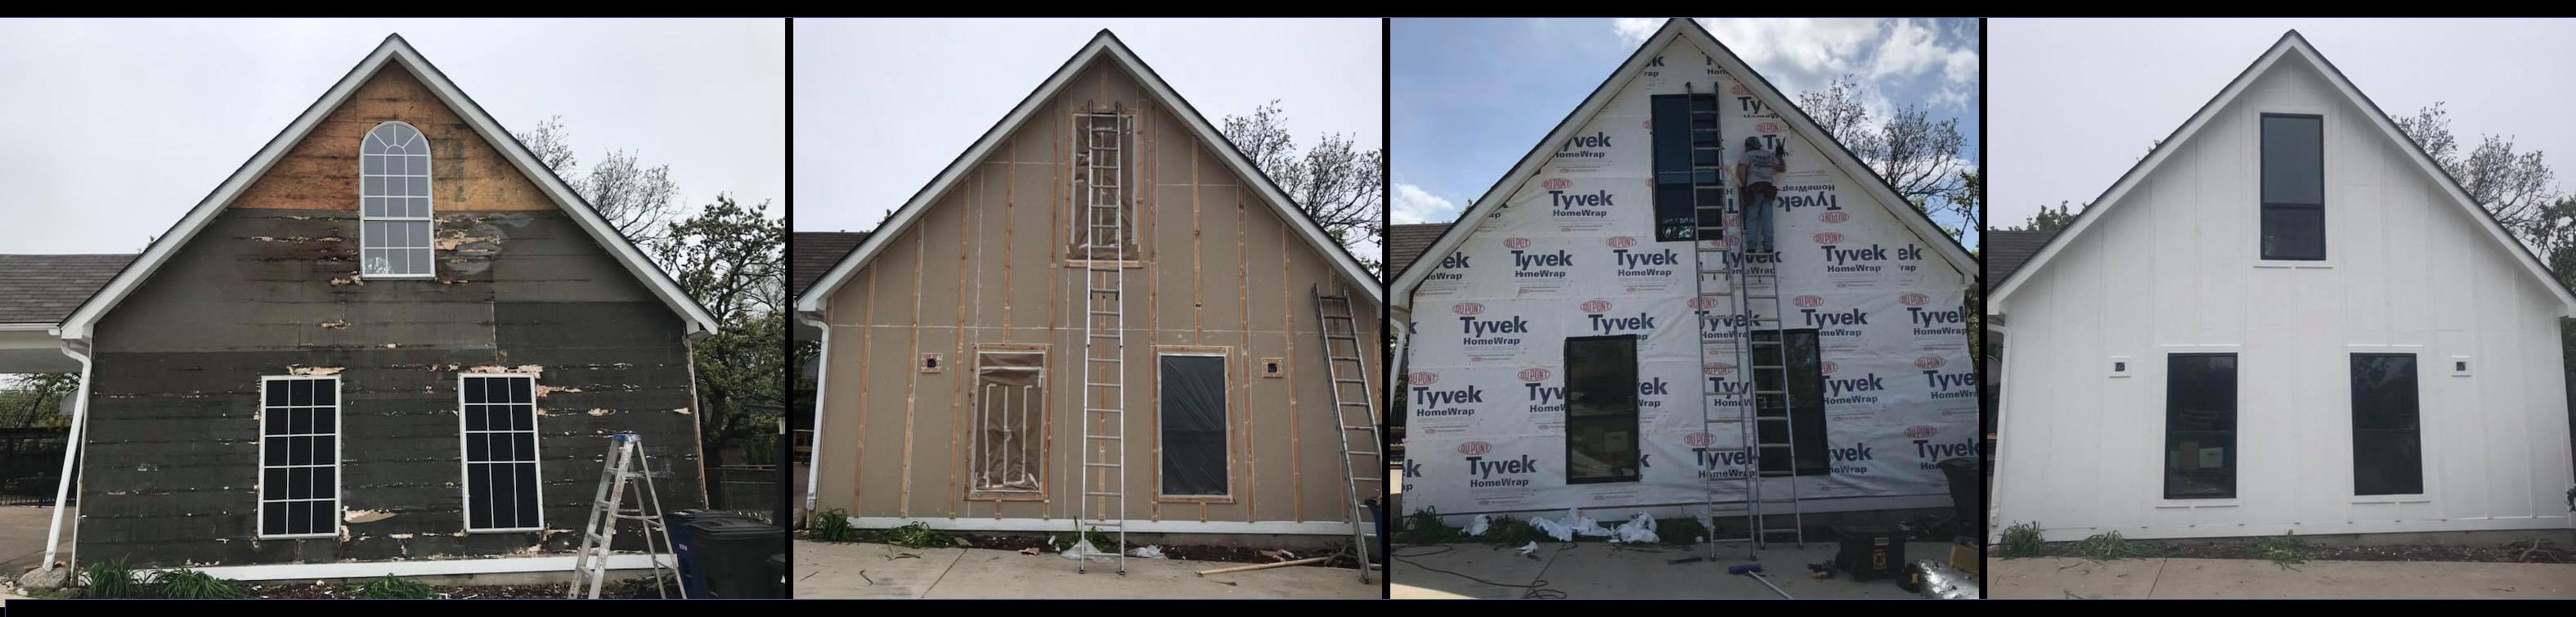 a church in Grapevine with exterior siding replaced and painted